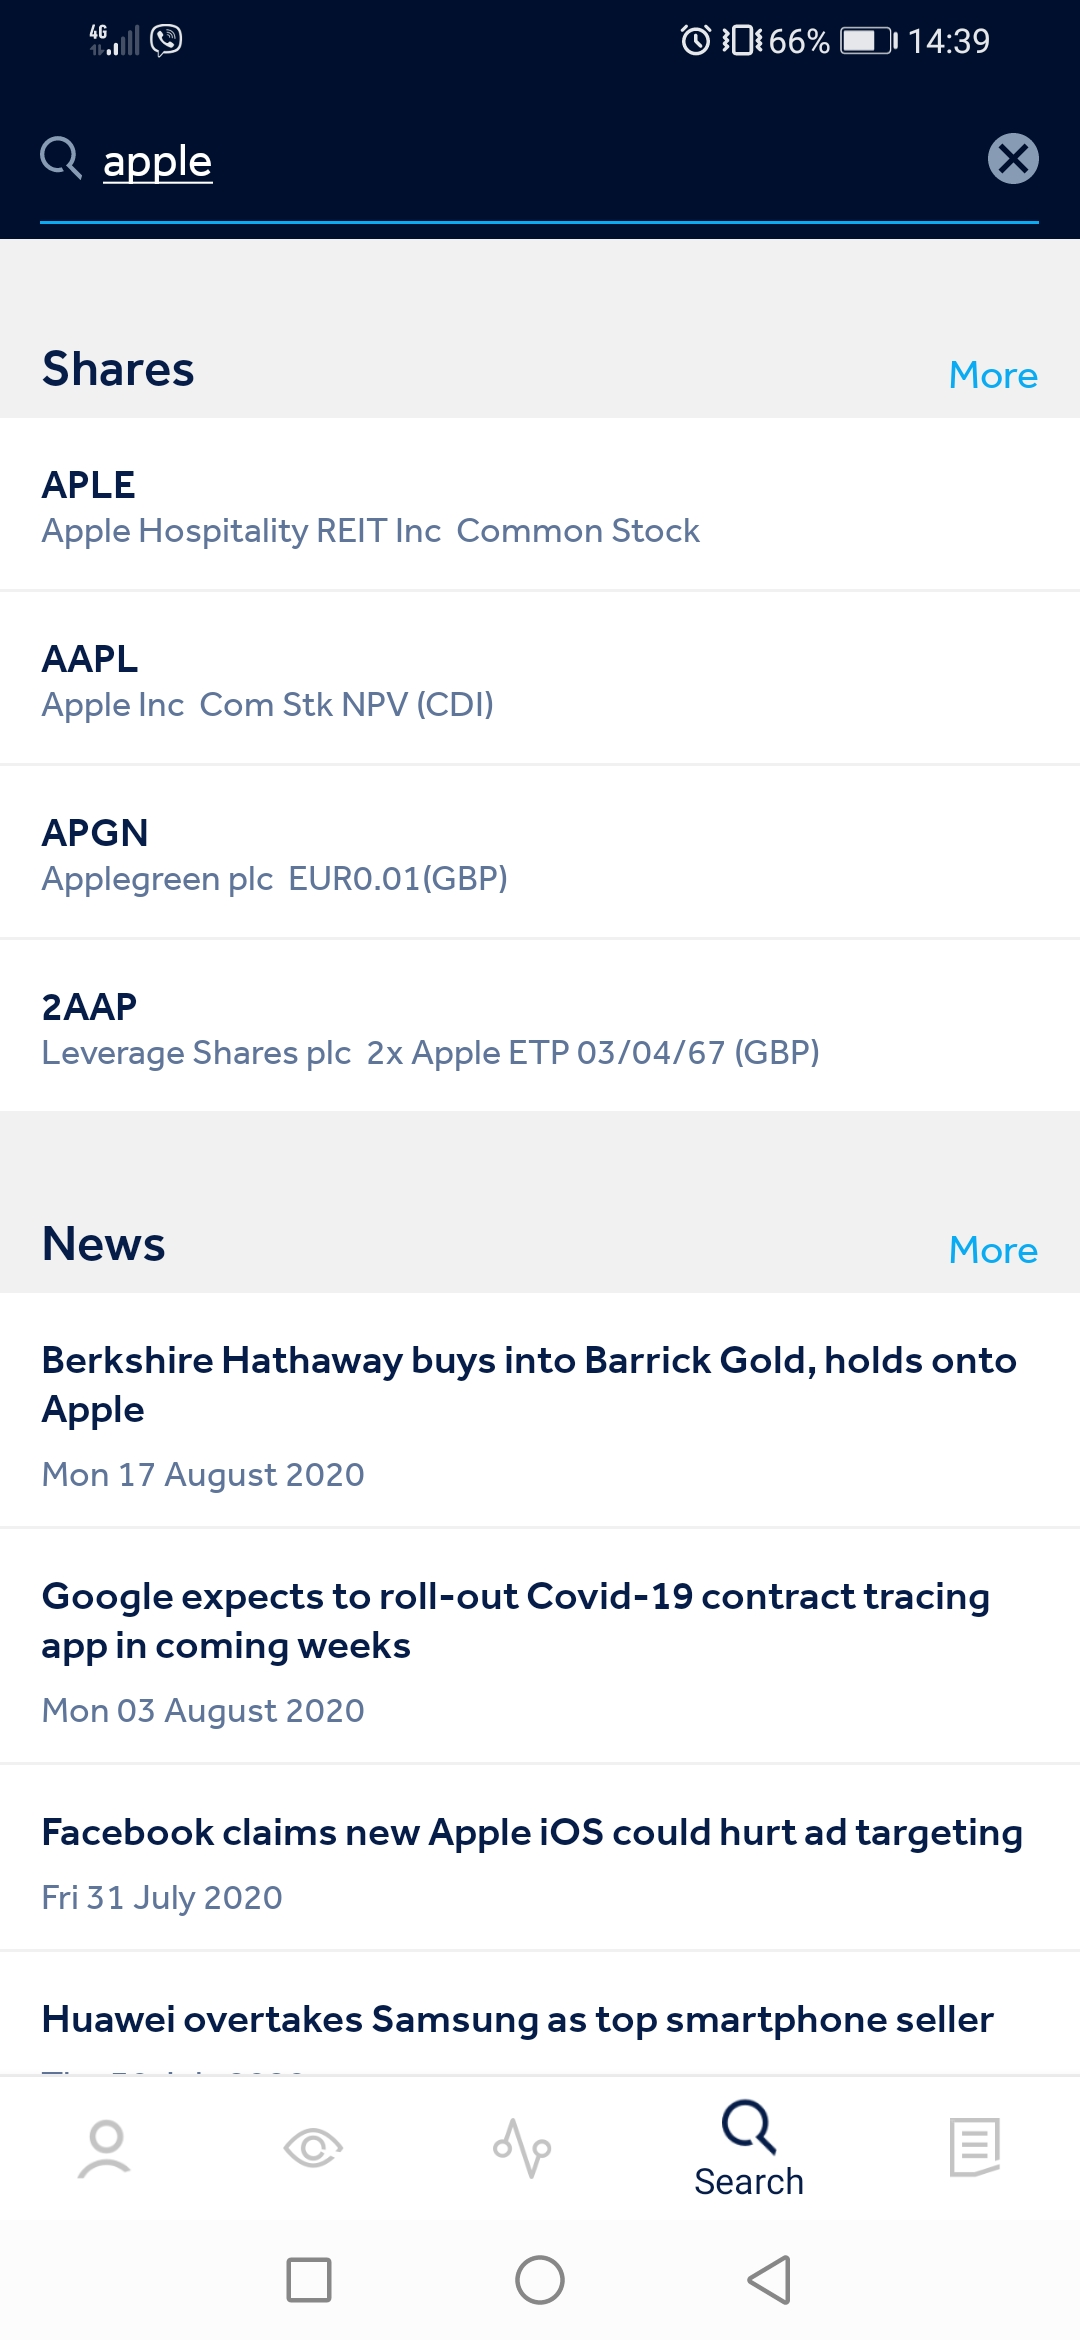 Hargreaves Lansdown review - Mobile trading platform - Search